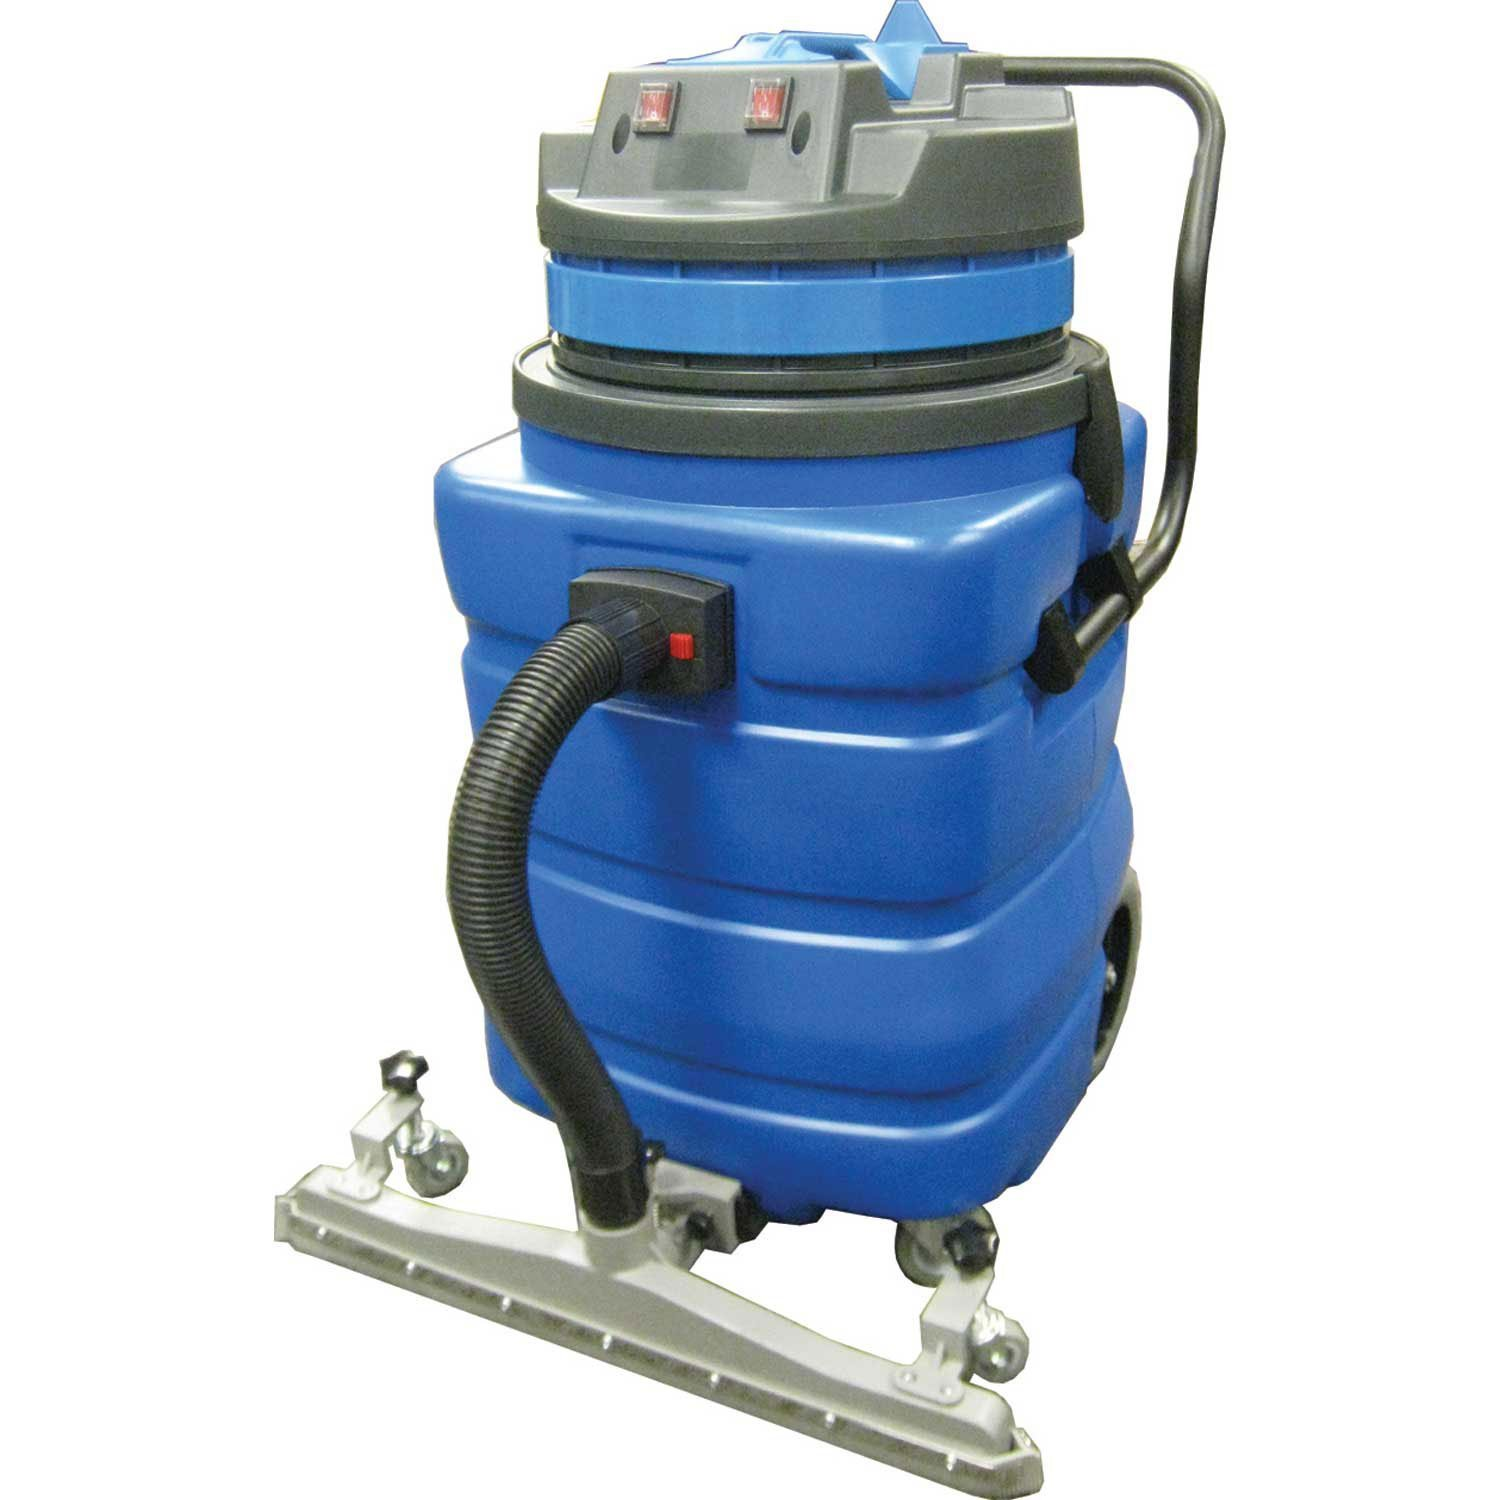 Perfect Products 23 Gallon Two-2 Stage Motor Wet/Dry Vac W/5-Piece Tool Kit & Squeegee, Blue